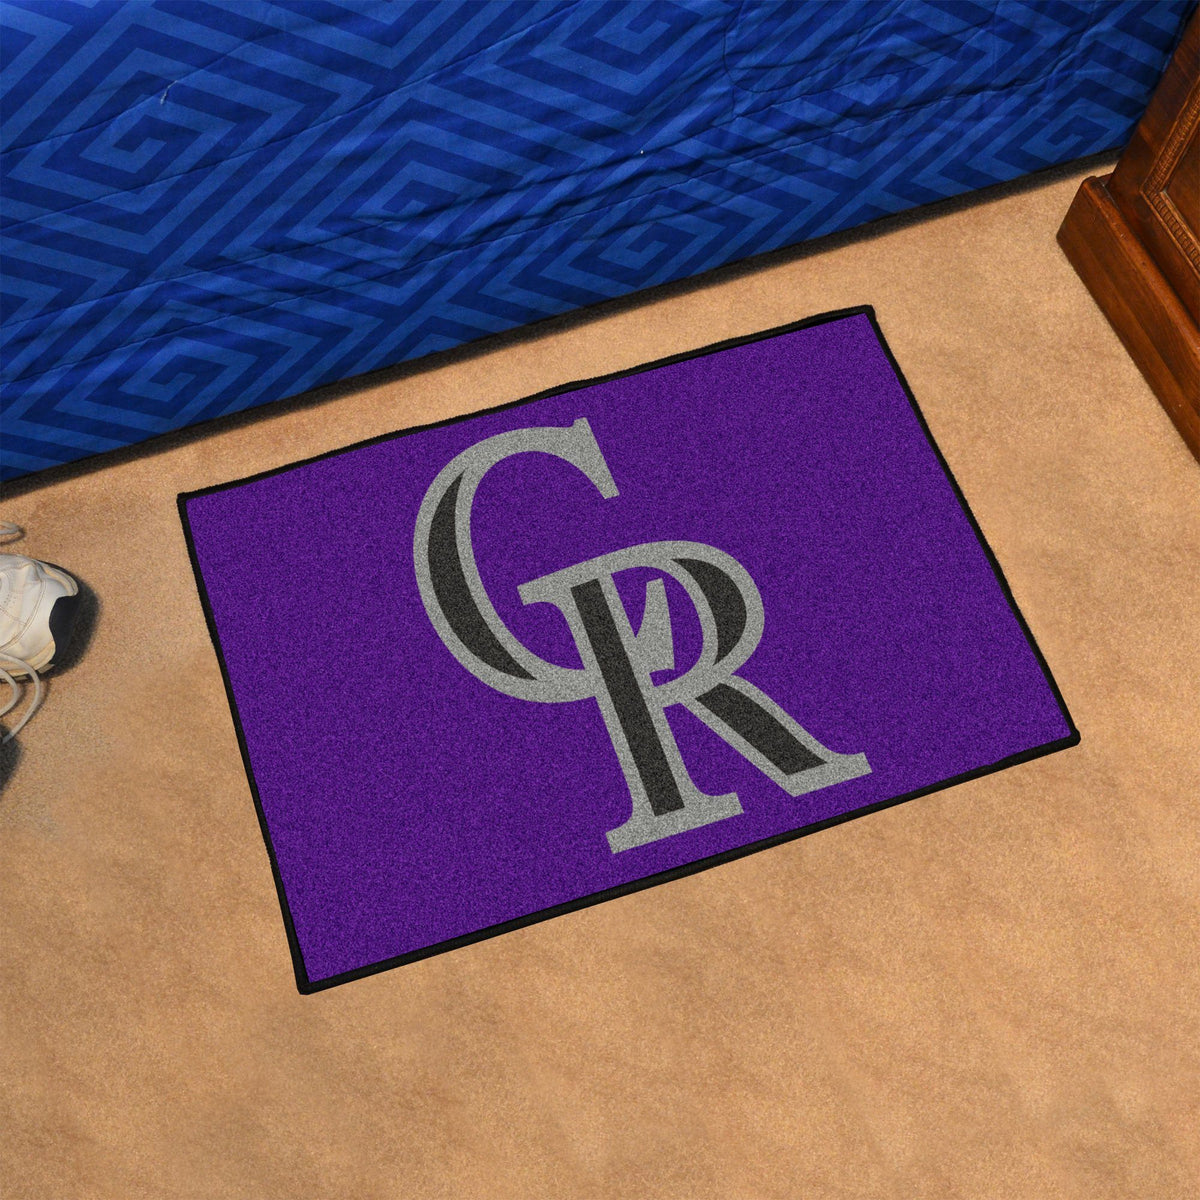 MLB - Starter Mat MLB Mats, Rectangular Mats, Starter Mat, MLB, Home Fan Mats Colorado Rockies